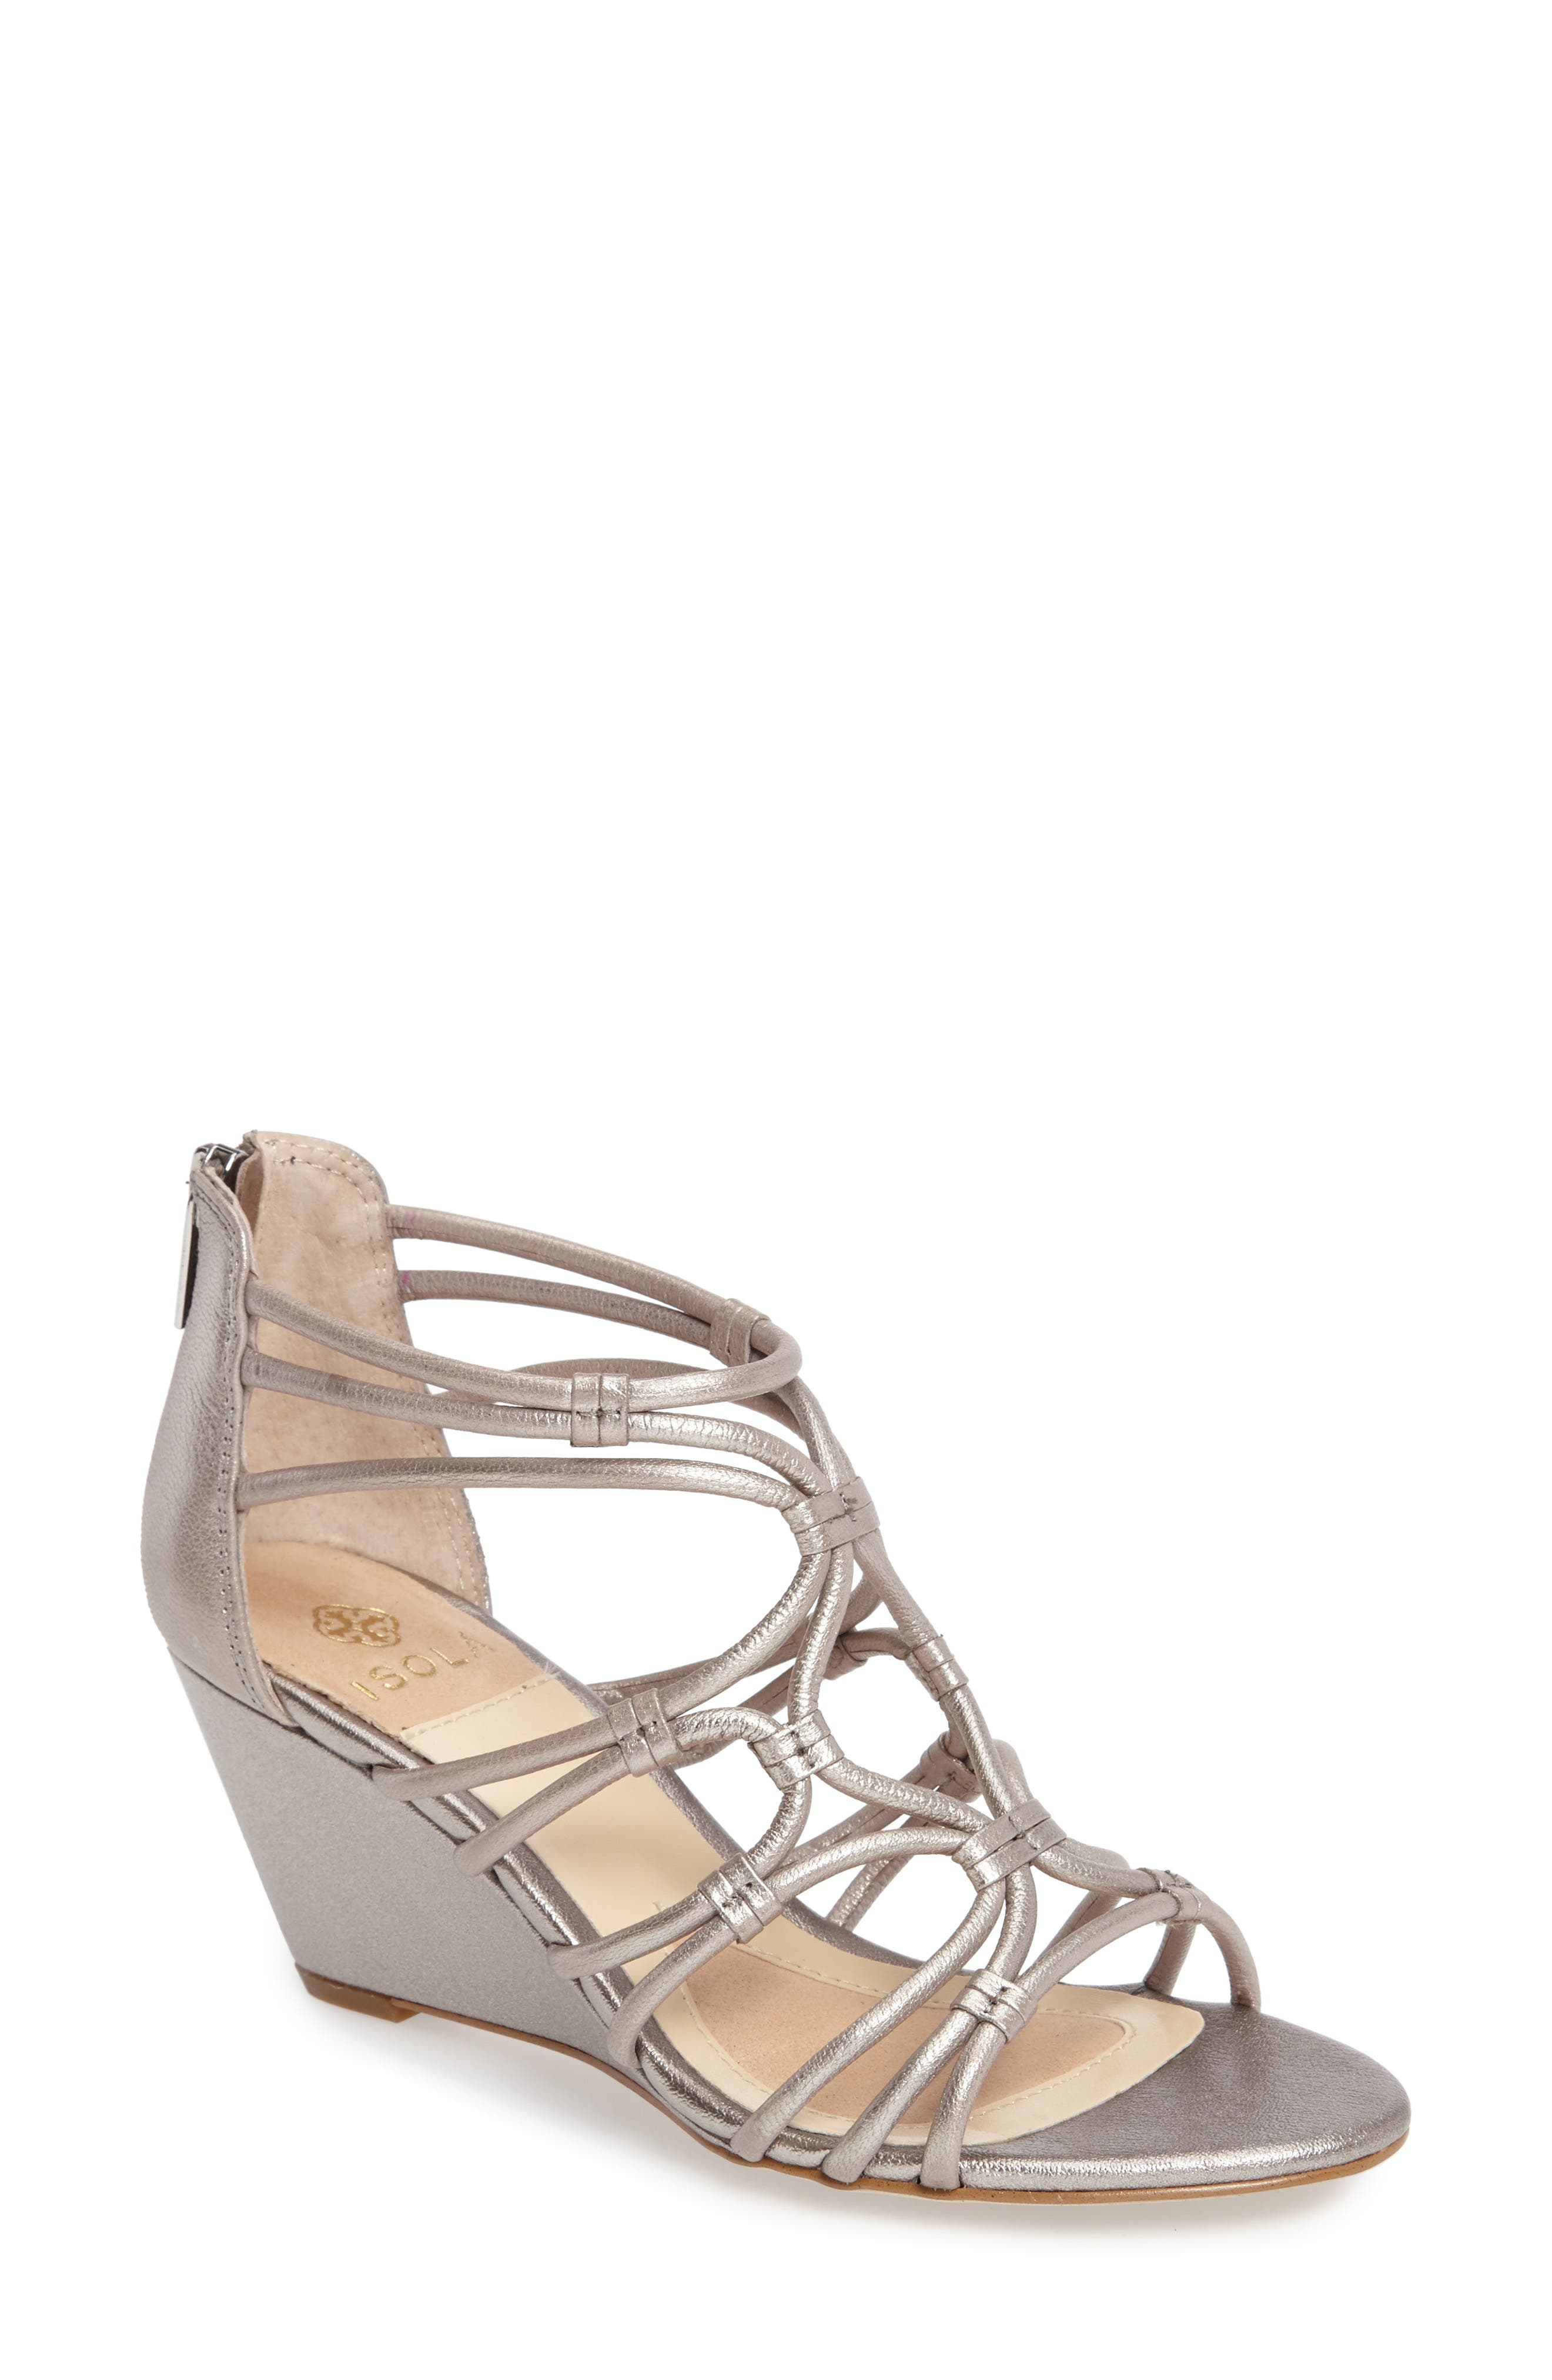 Floral Strappy Wedge Sandal,                             Main thumbnail 1, color,                             ANTHRACITE LEATHER